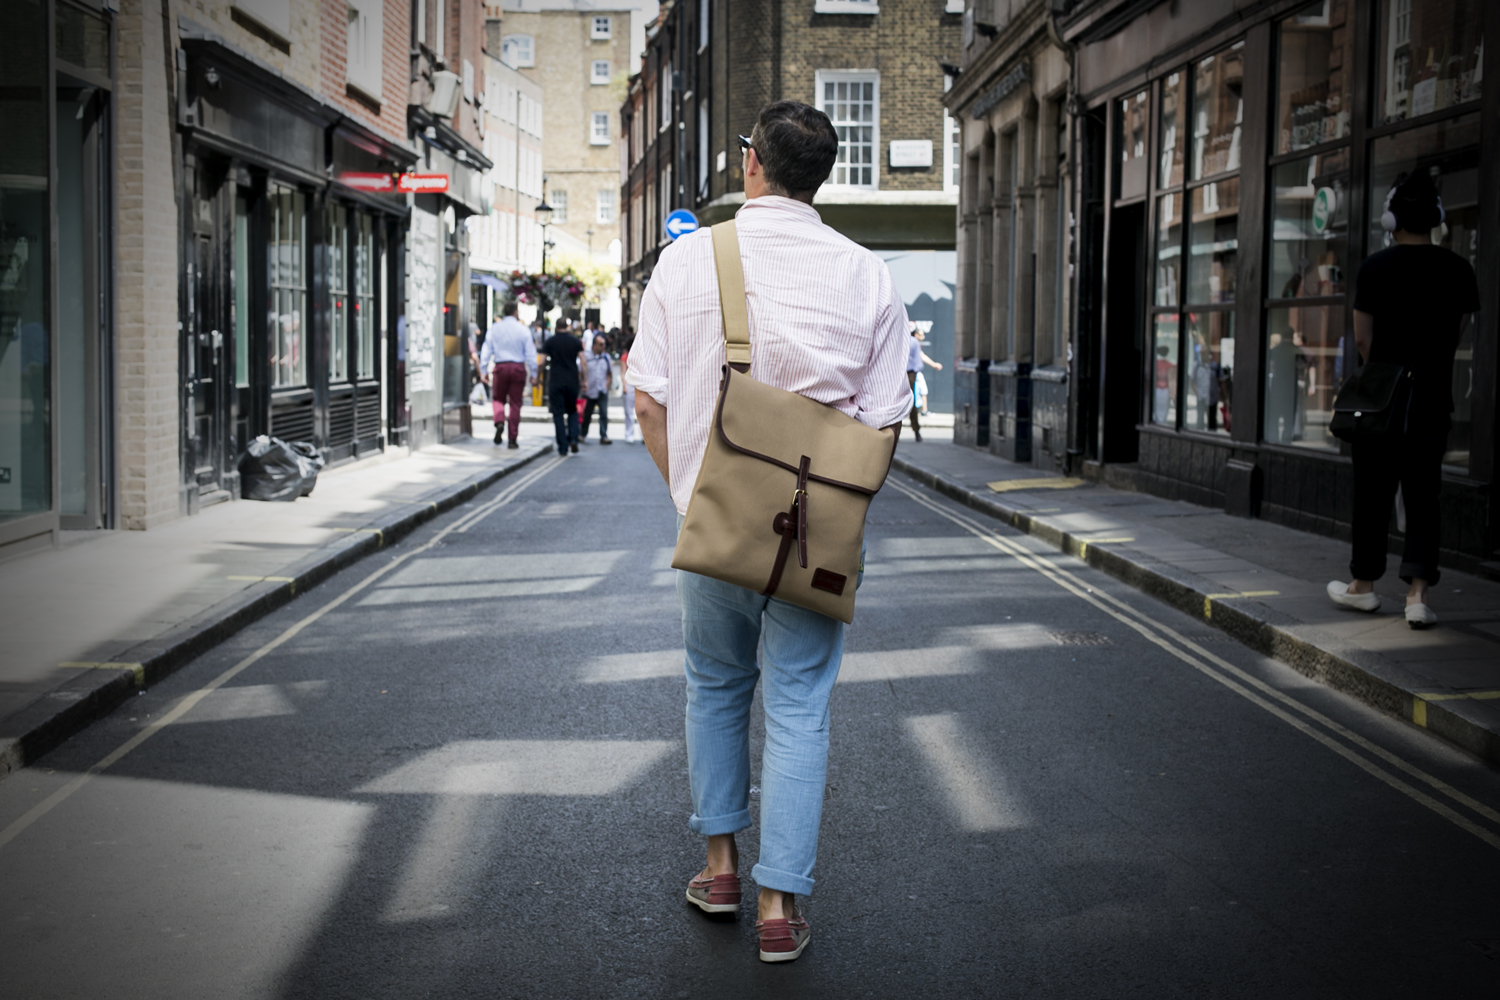 Jonny Trunk wearing the Original Peter Classic 12-inch LP Record Hunting Bag in Khaki while record hunting in Soho, London, England.